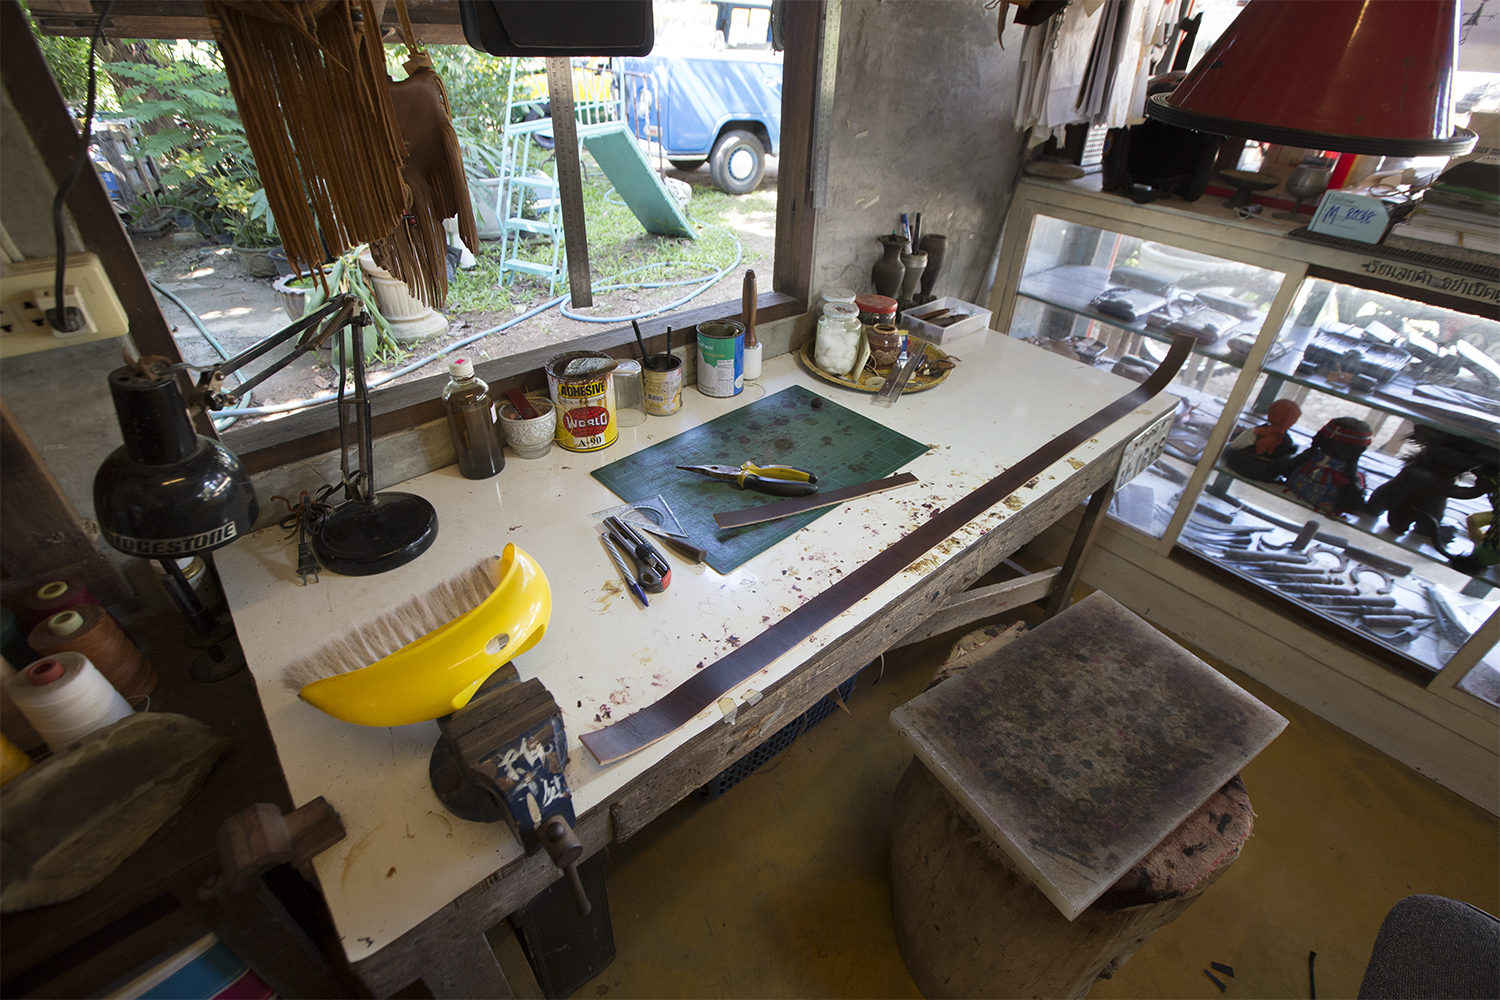 Welcome to the Real Lampang: A Dreamer's Cafe and Artist's Workshop